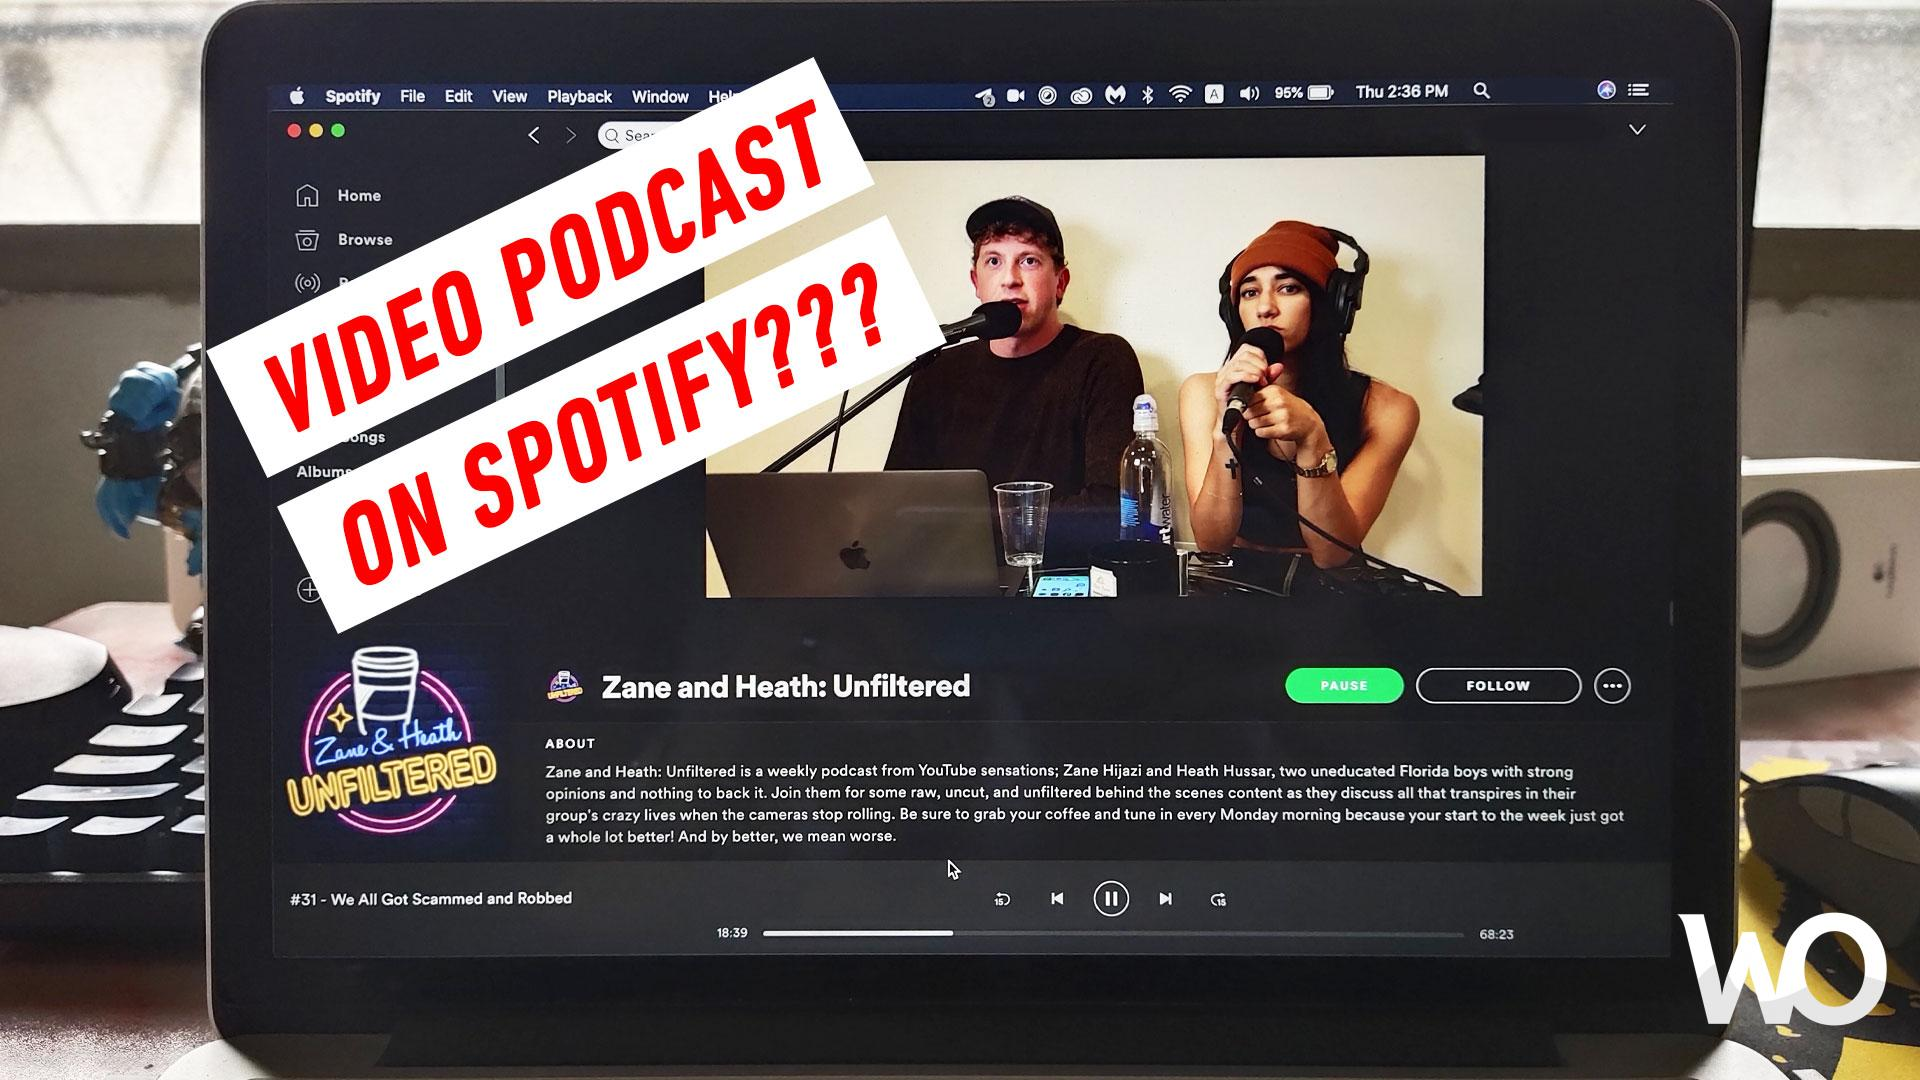 Spotify Video Podcast